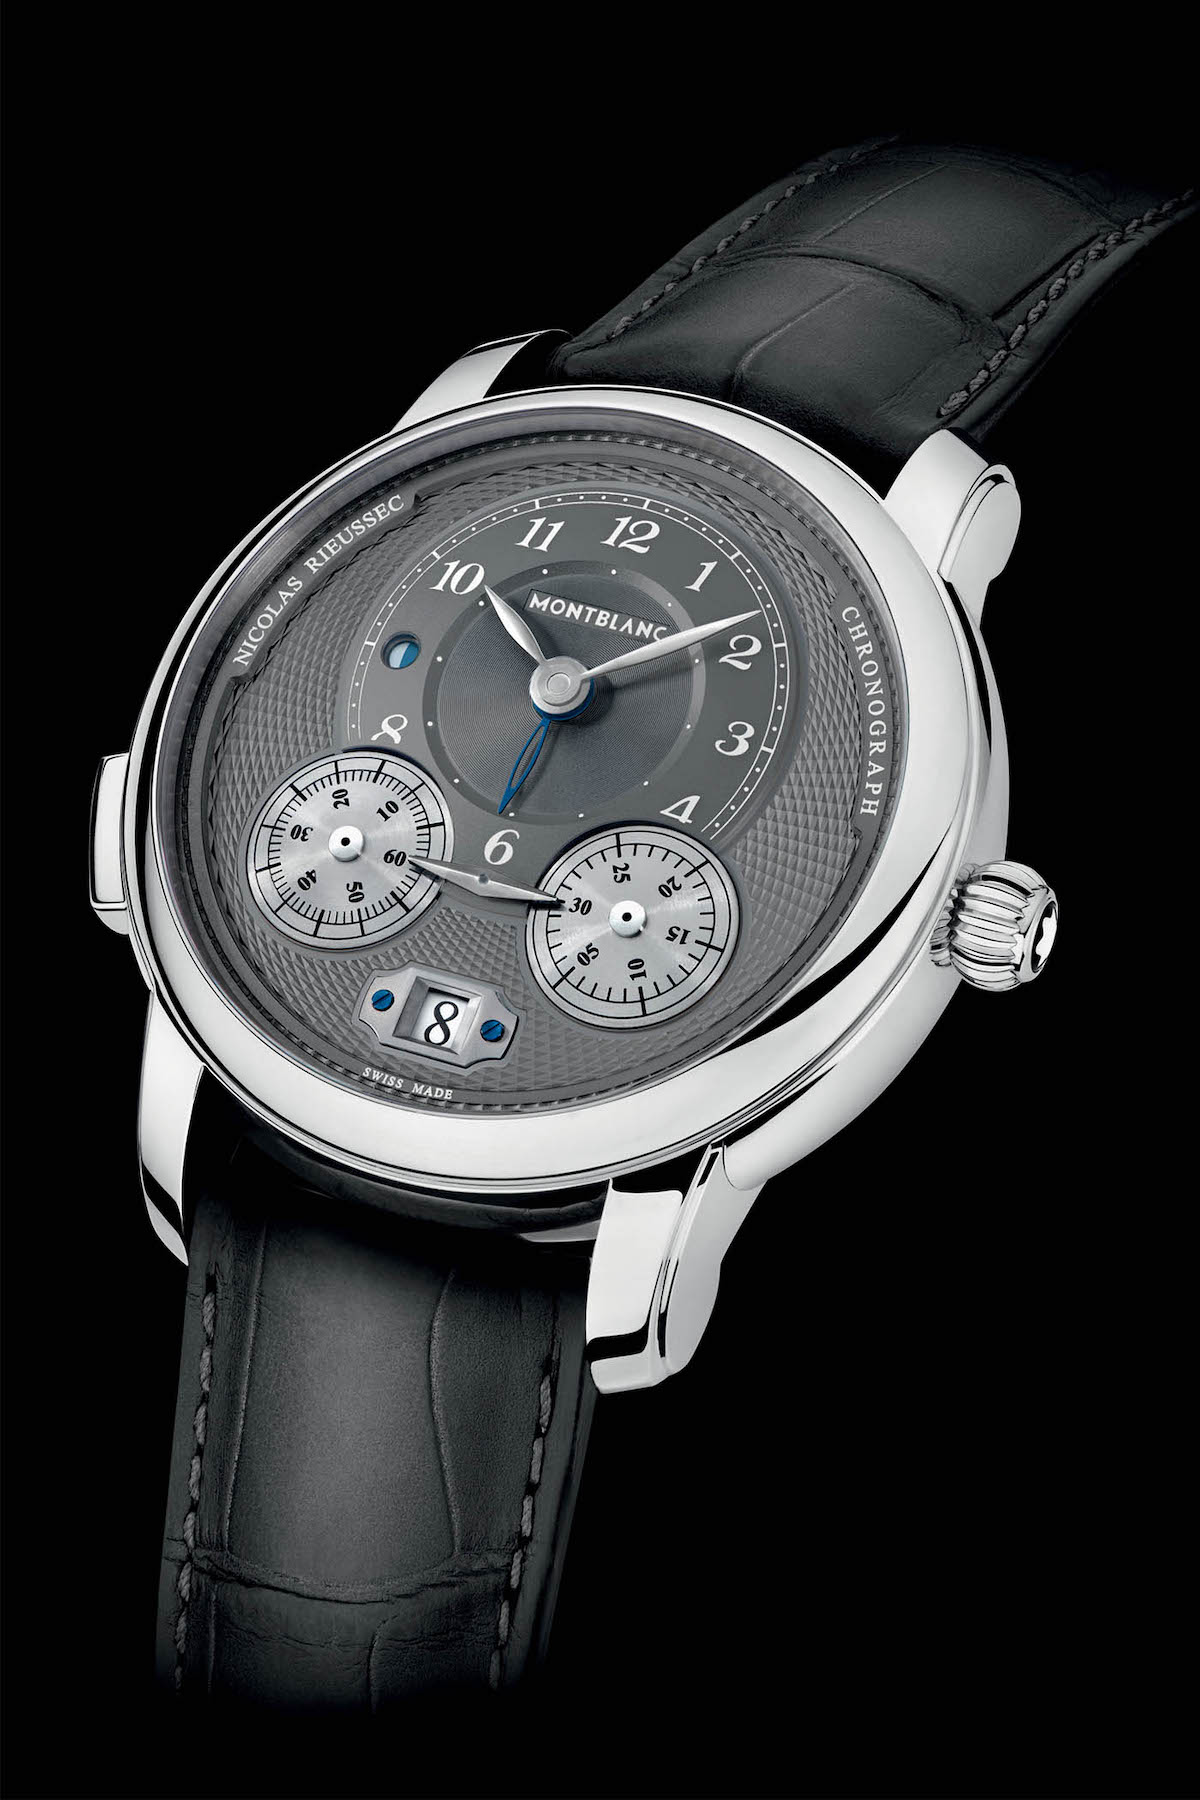 pre-sihh-2019-montblanc-star-legacy-nicolas-rieussec-anthracite-dial-4.jpg